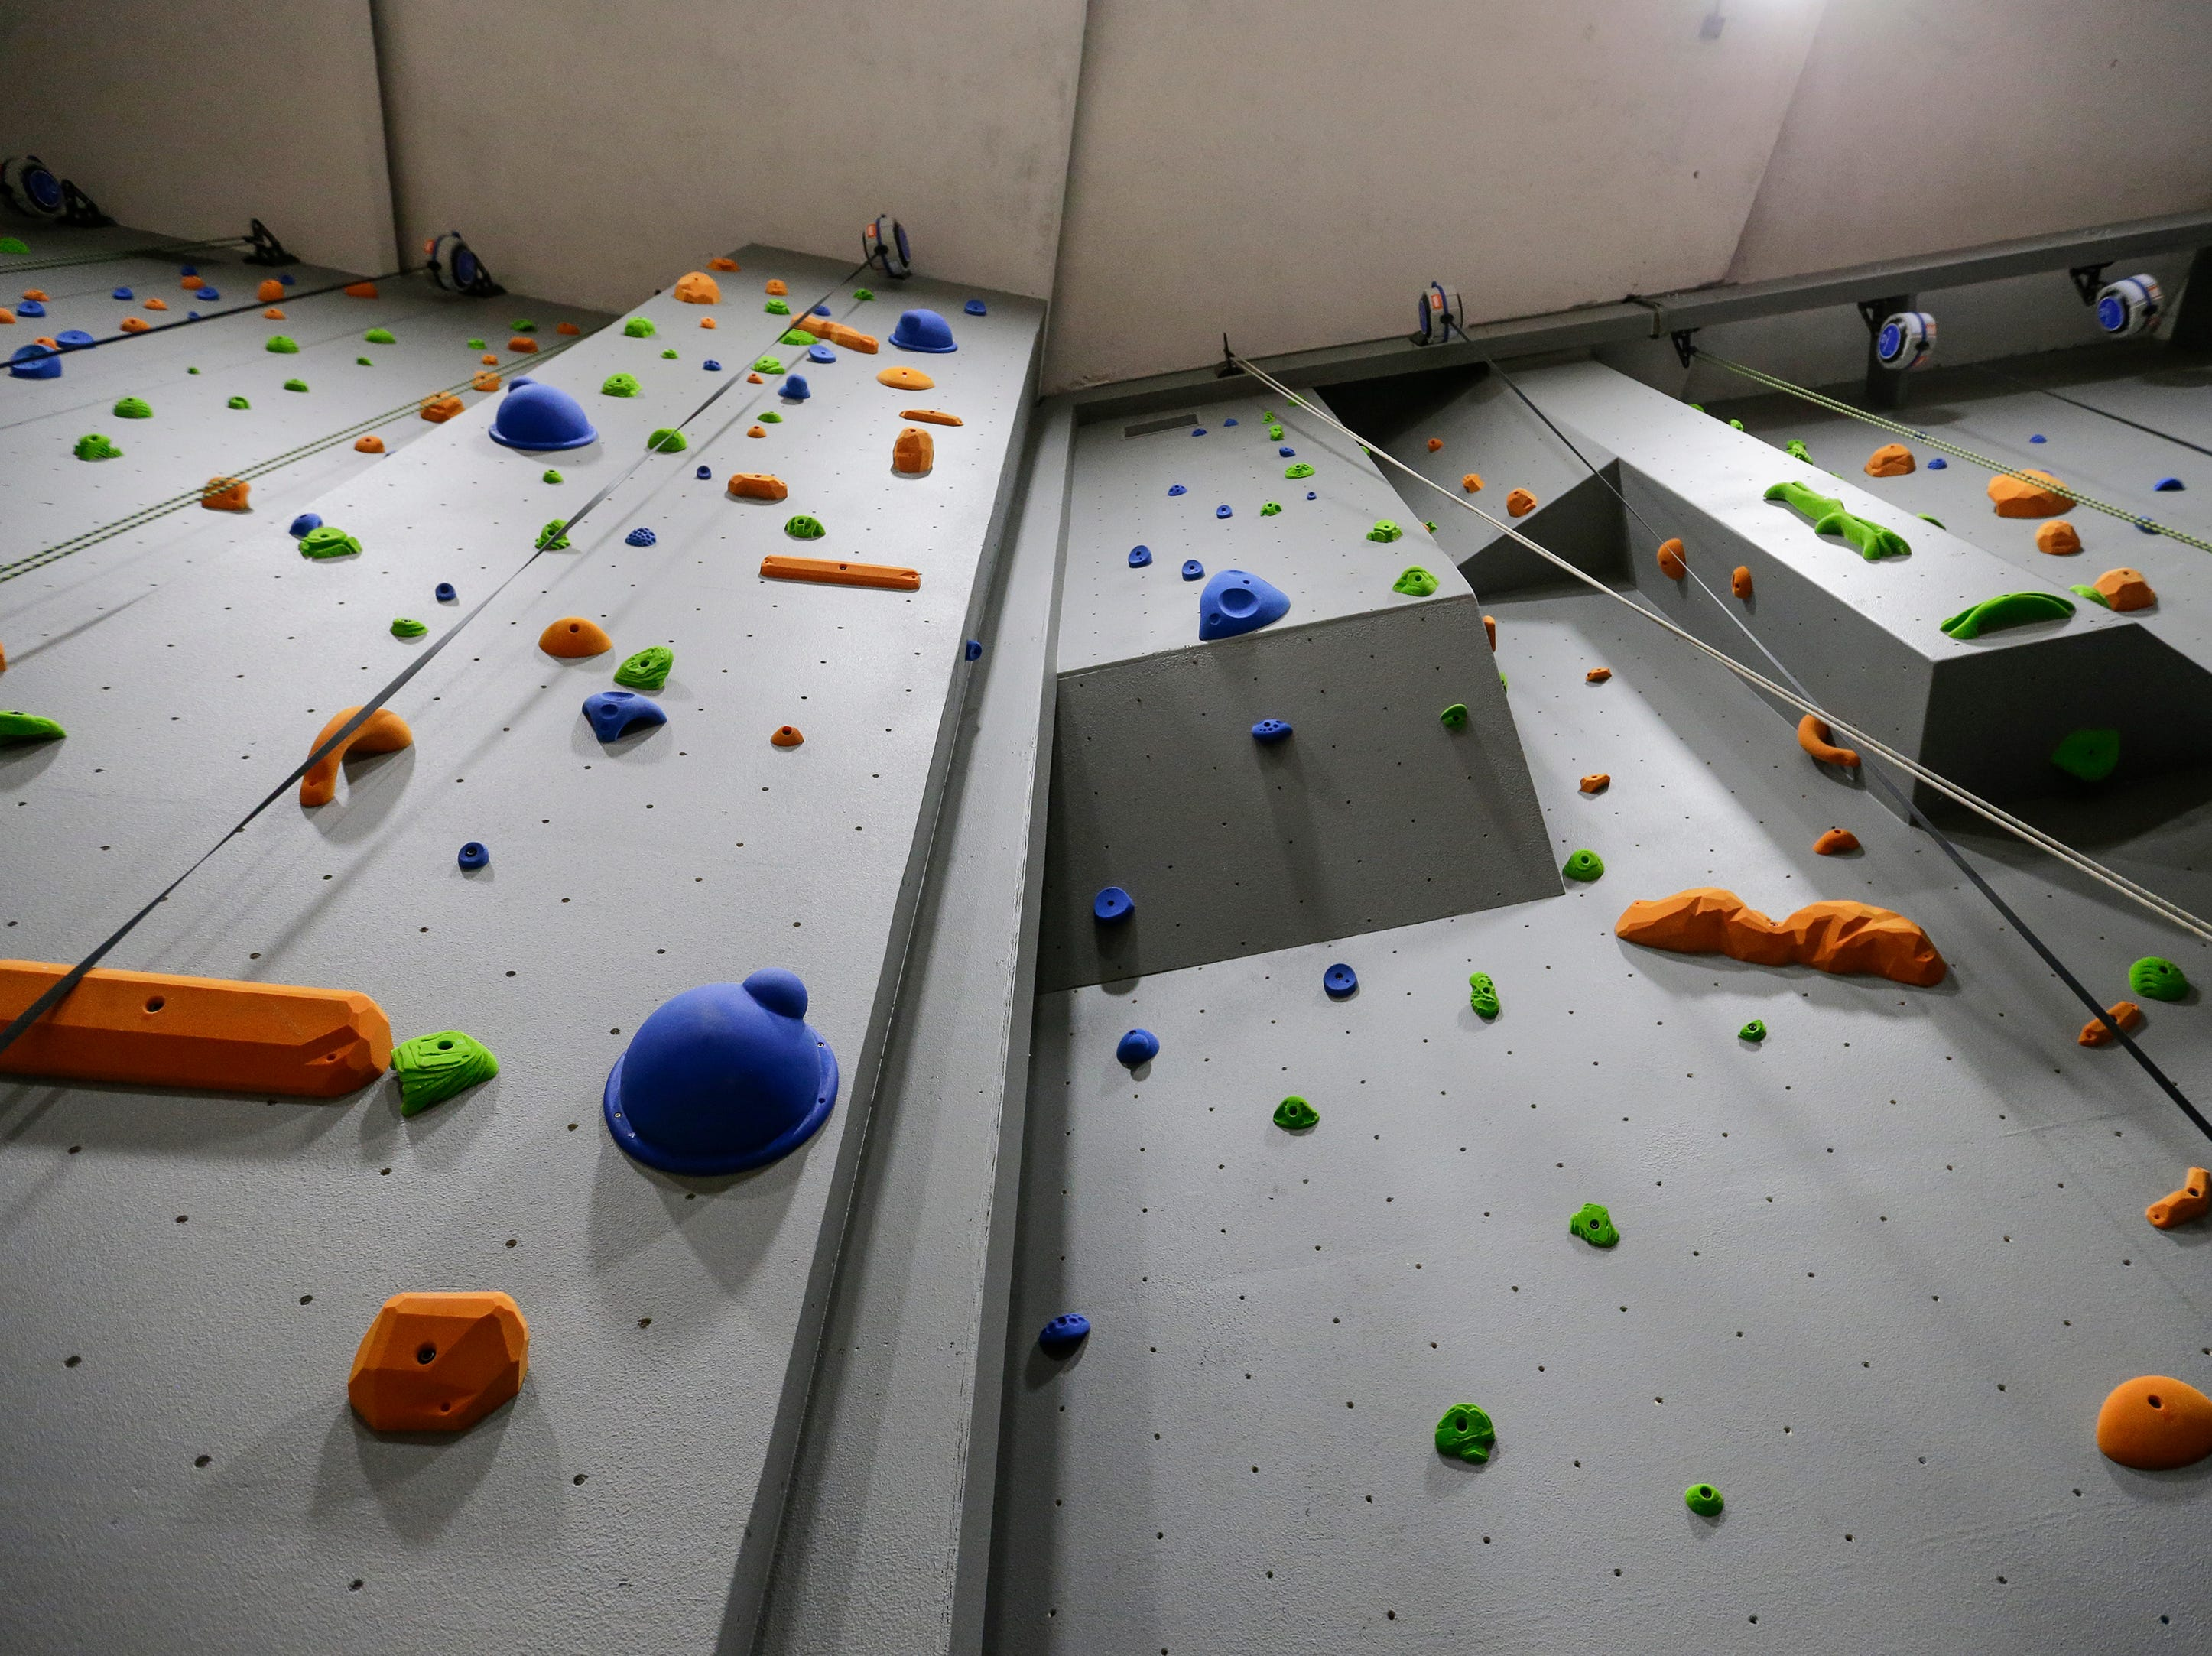 The climbing wall at Strand Adventures Wednesday, May 1, 2019, in Manitowoc, Wis. Joshua Clark/USA TODAY NETWORK-Wisconsin